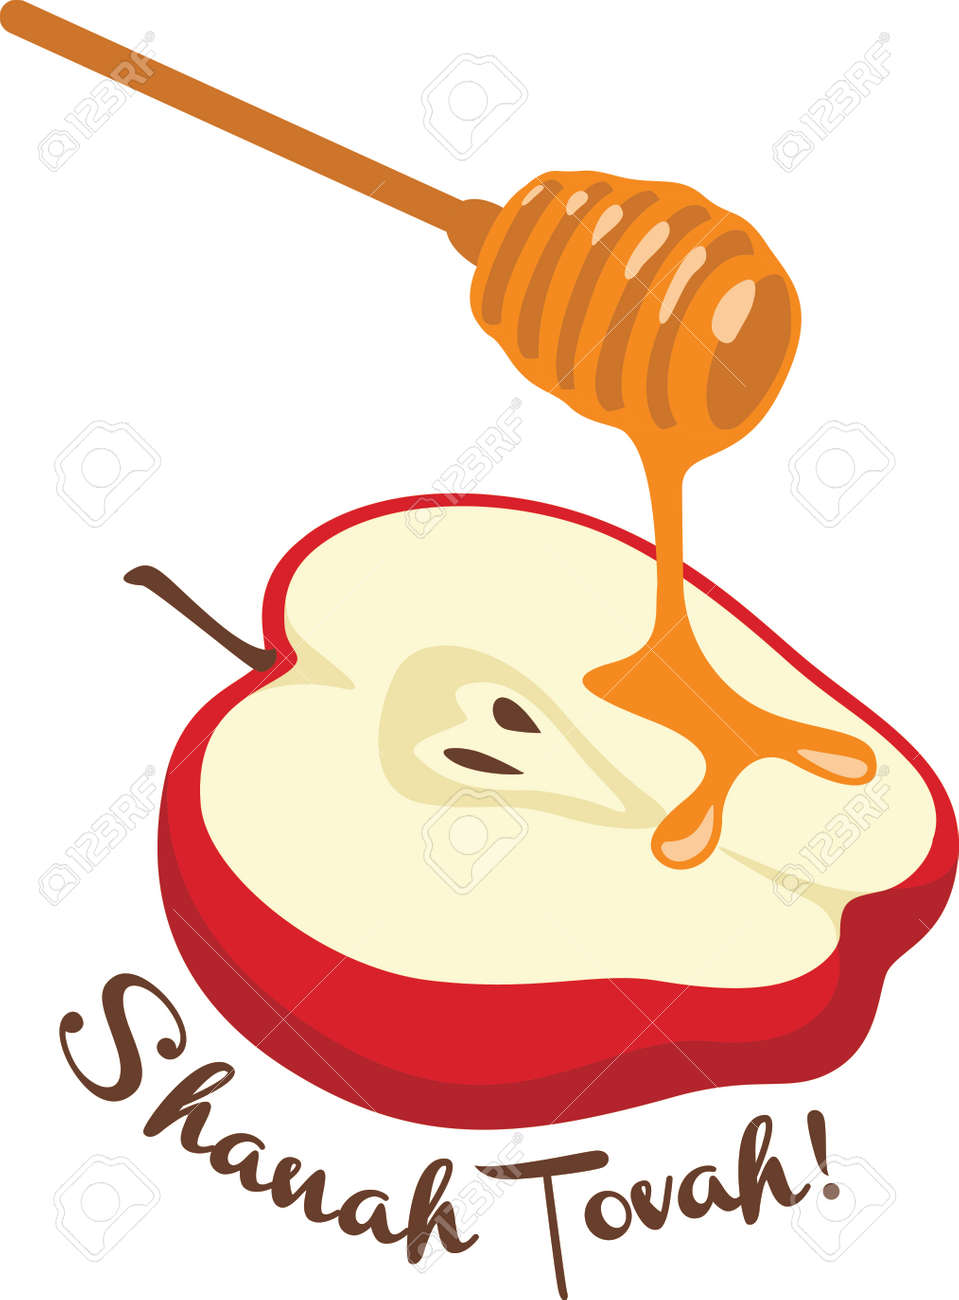 celebrate rosh hashanah with this sweet apple and honey design rh 123rf com clipart rosh hashanah rosh hashanah clipart pictures